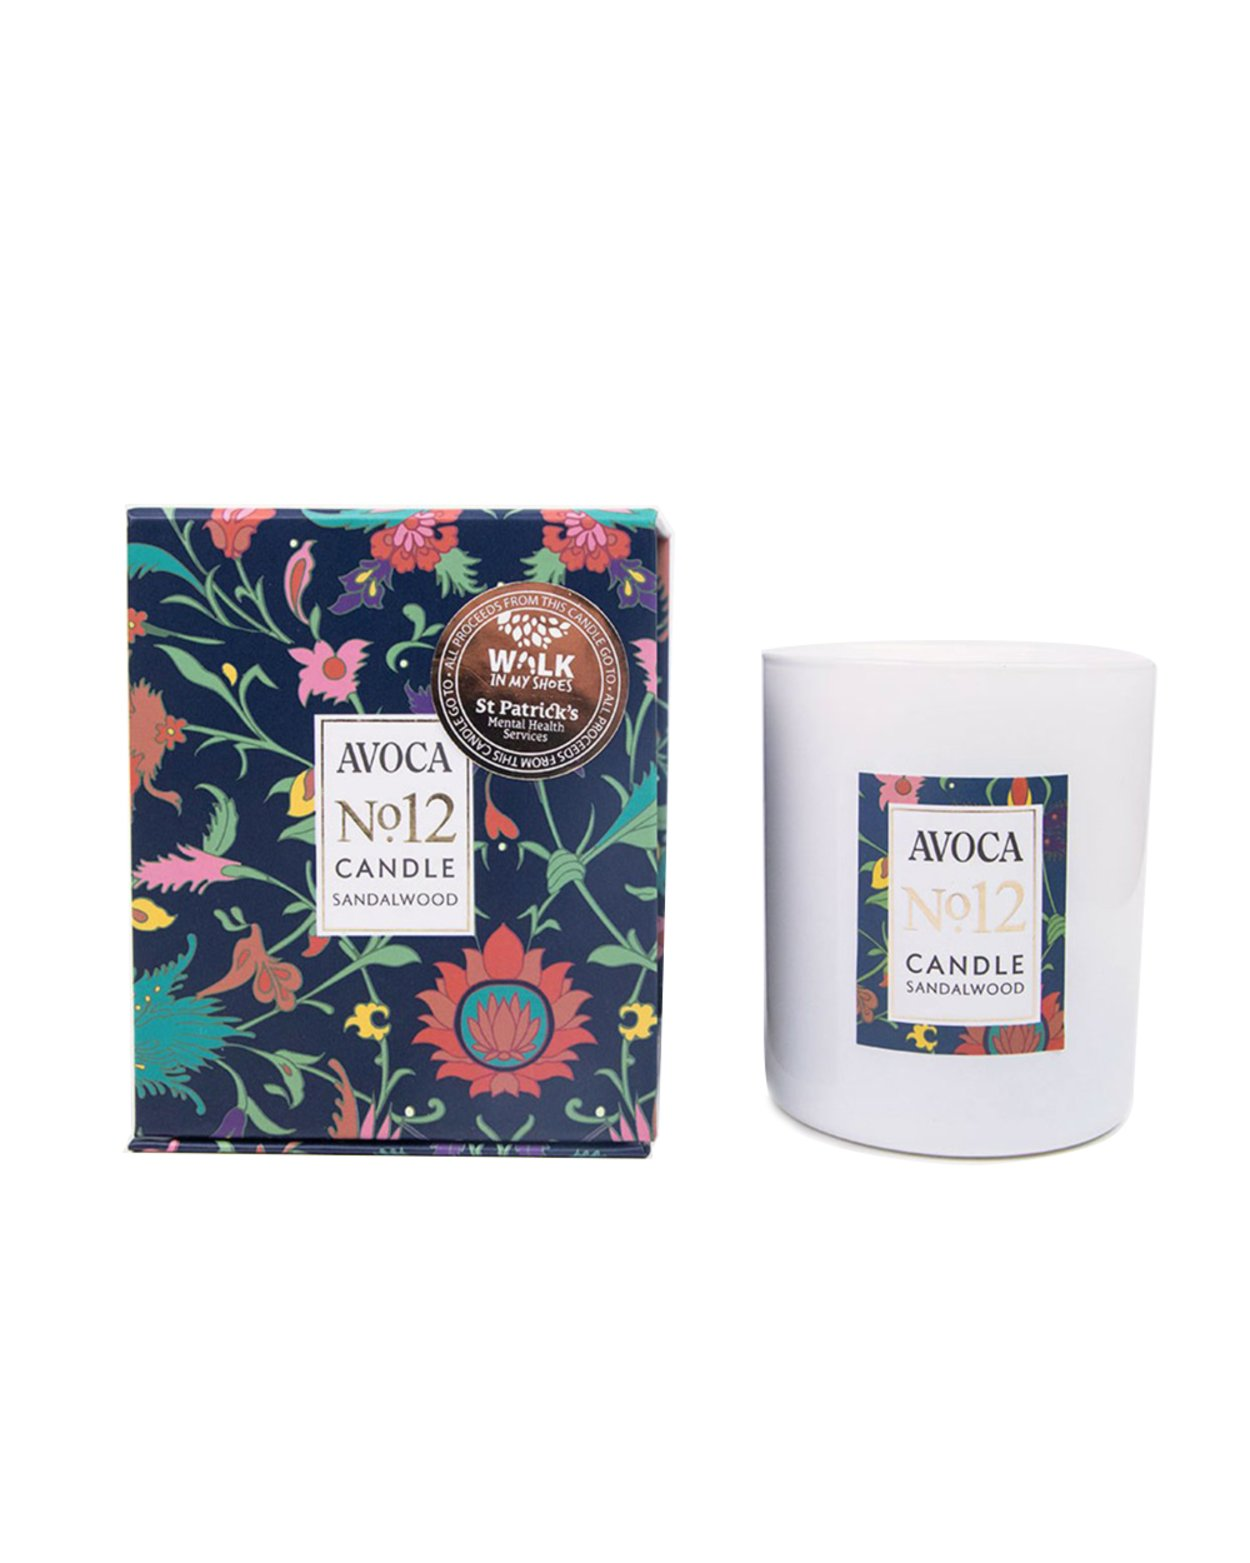 Charity Candle  - No. 12 Sandalwood Scented Candle